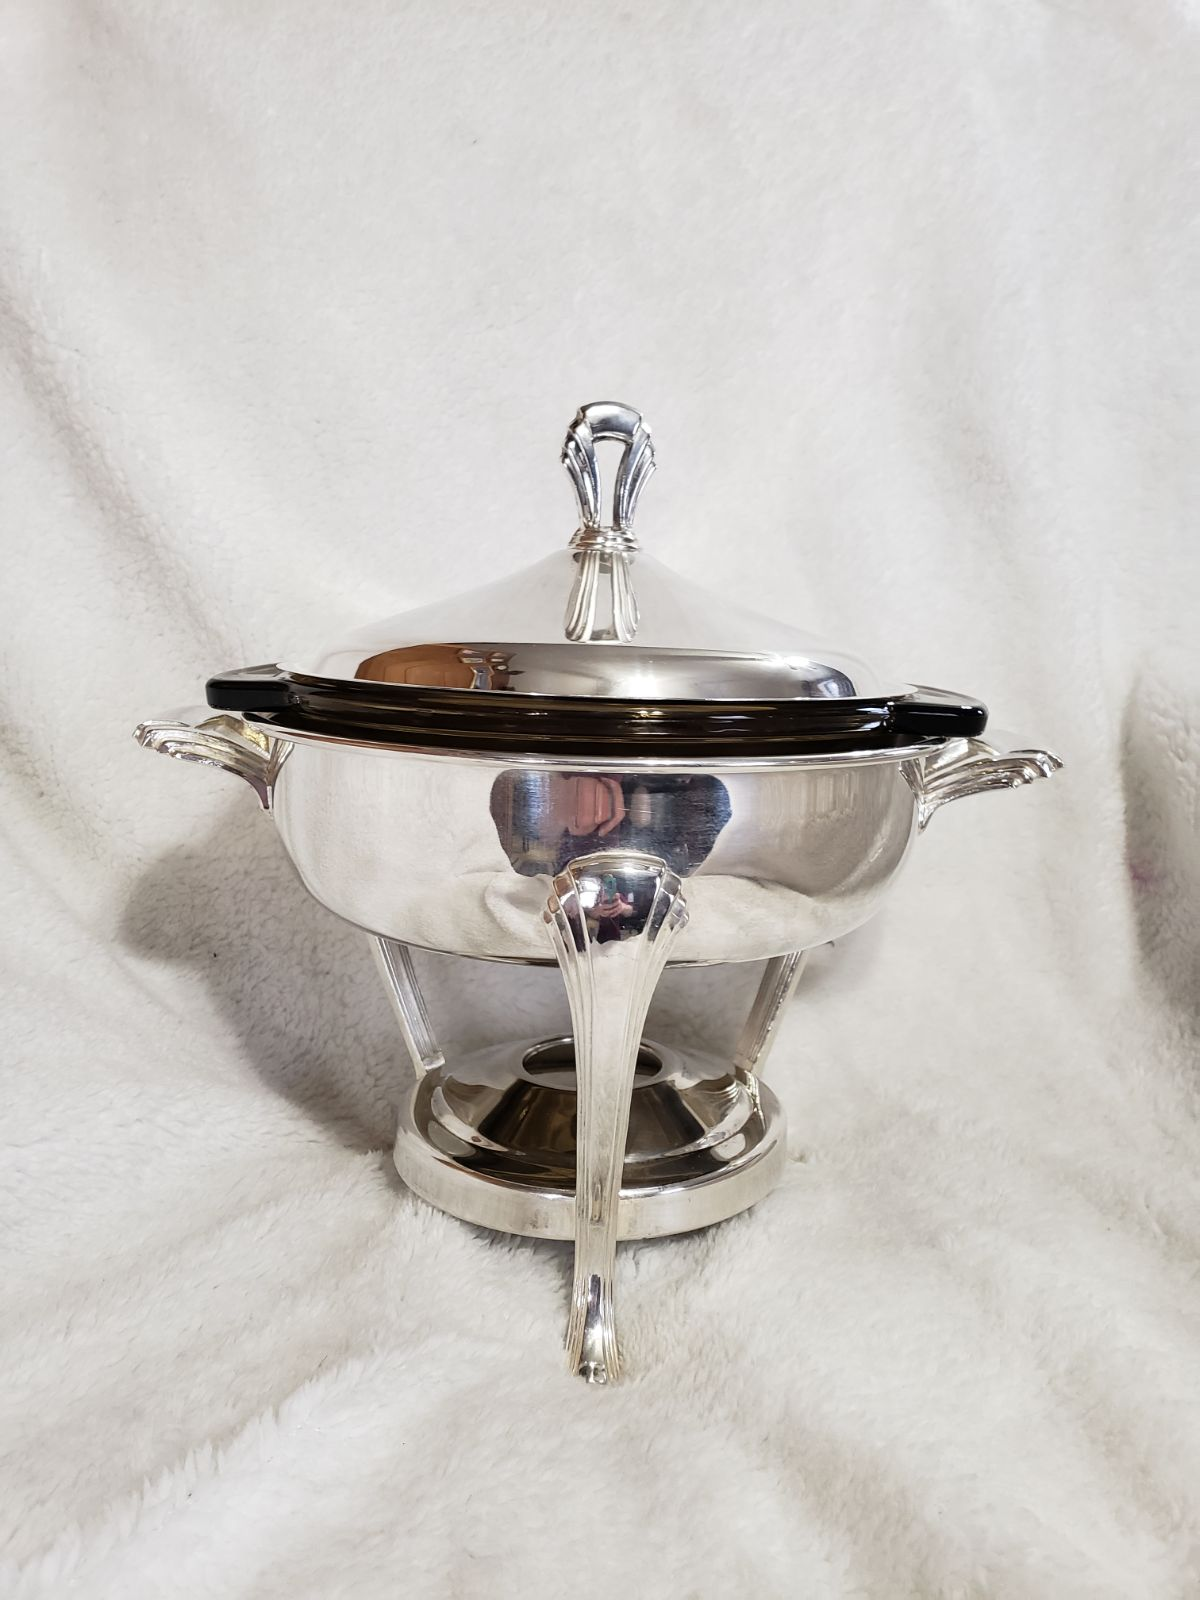 Vintage Towle silver plated chafing dish